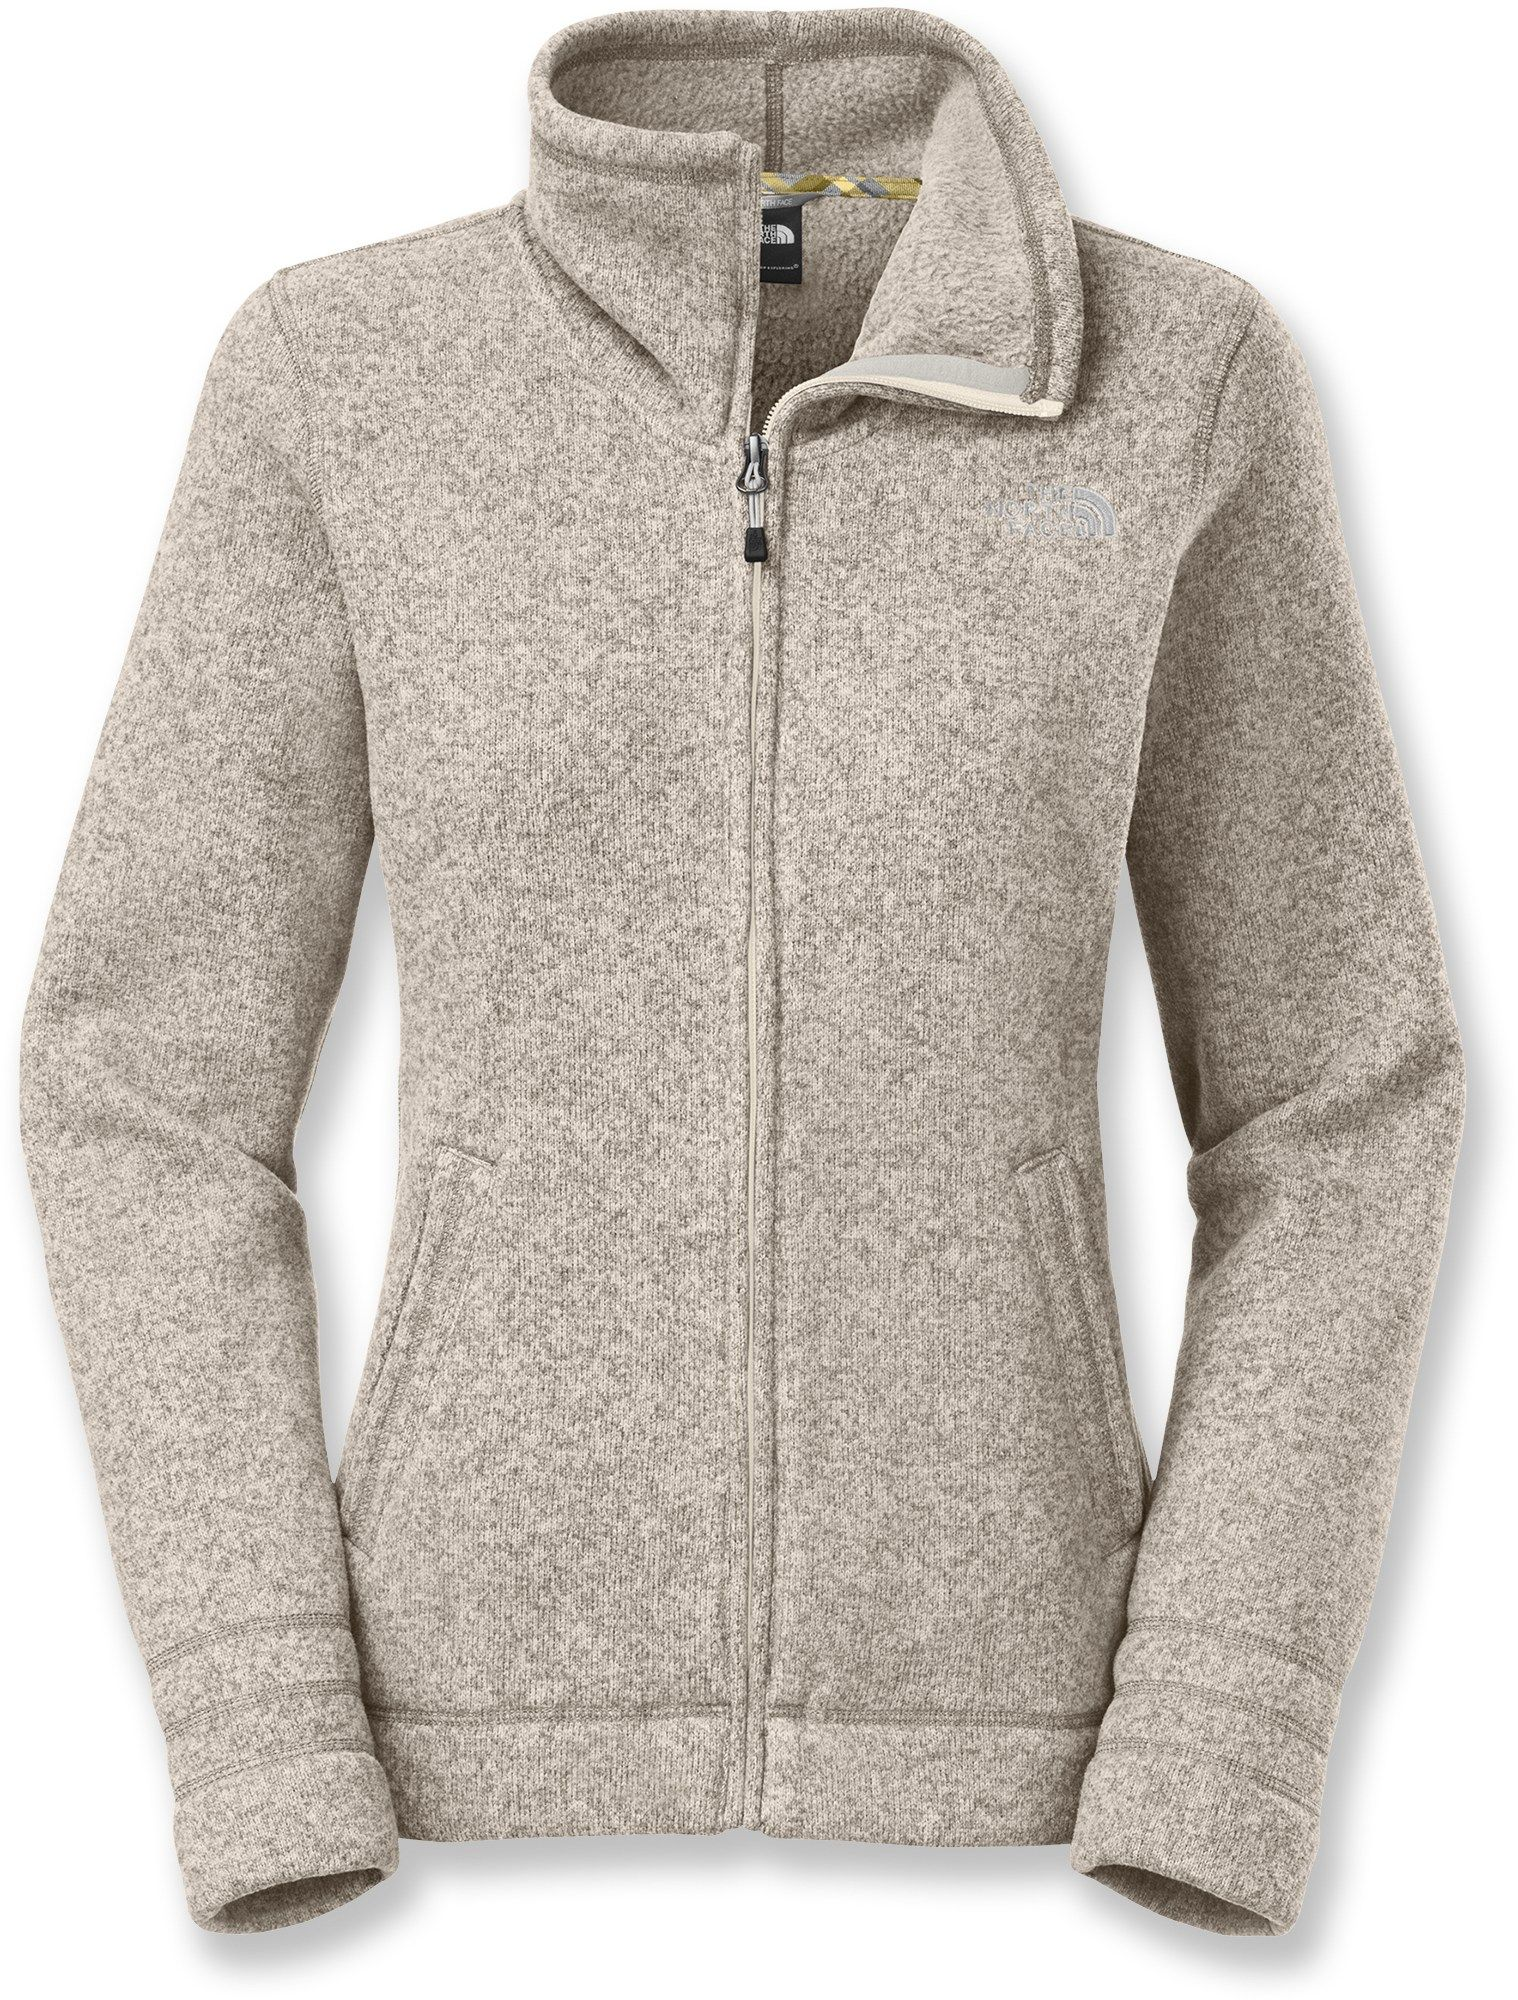 bb54af73b323 The North Face Crescent Sunset Full-Zip Fleece Jacket - Women s - Free  Shipping at REI.com